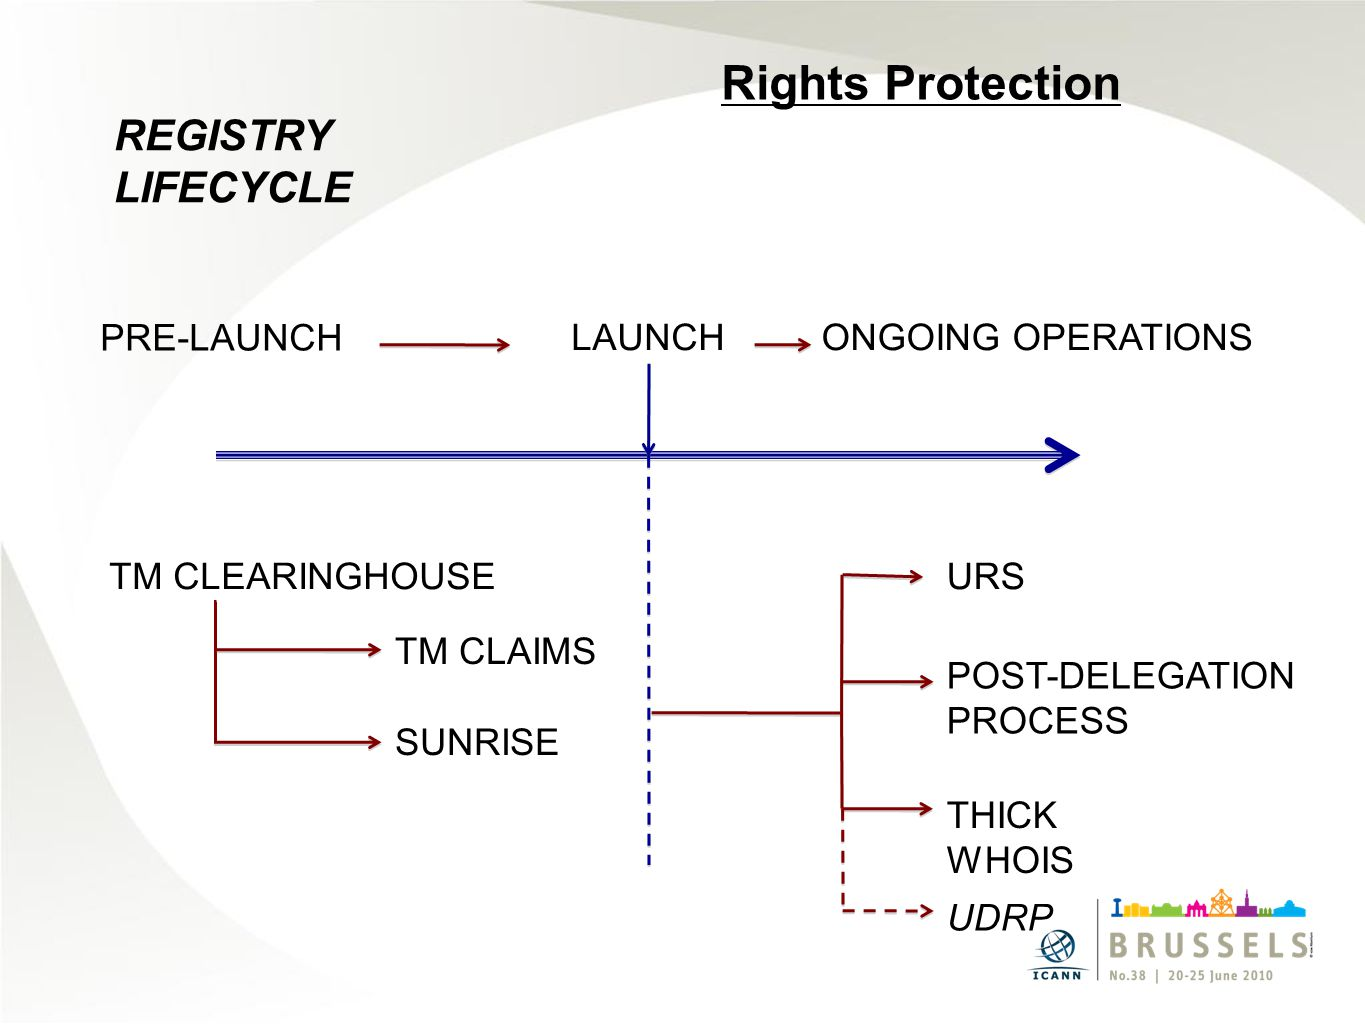 REGISTRY LIFECYCLE PRE-LAUNCH LAUNCHONGOING OPERATIONS TM CLEARINGHOUSEURS POST-DELEGATION PROCESS TM CLAIMS SUNRISE Rights Protection UDRP THICK WHOIS